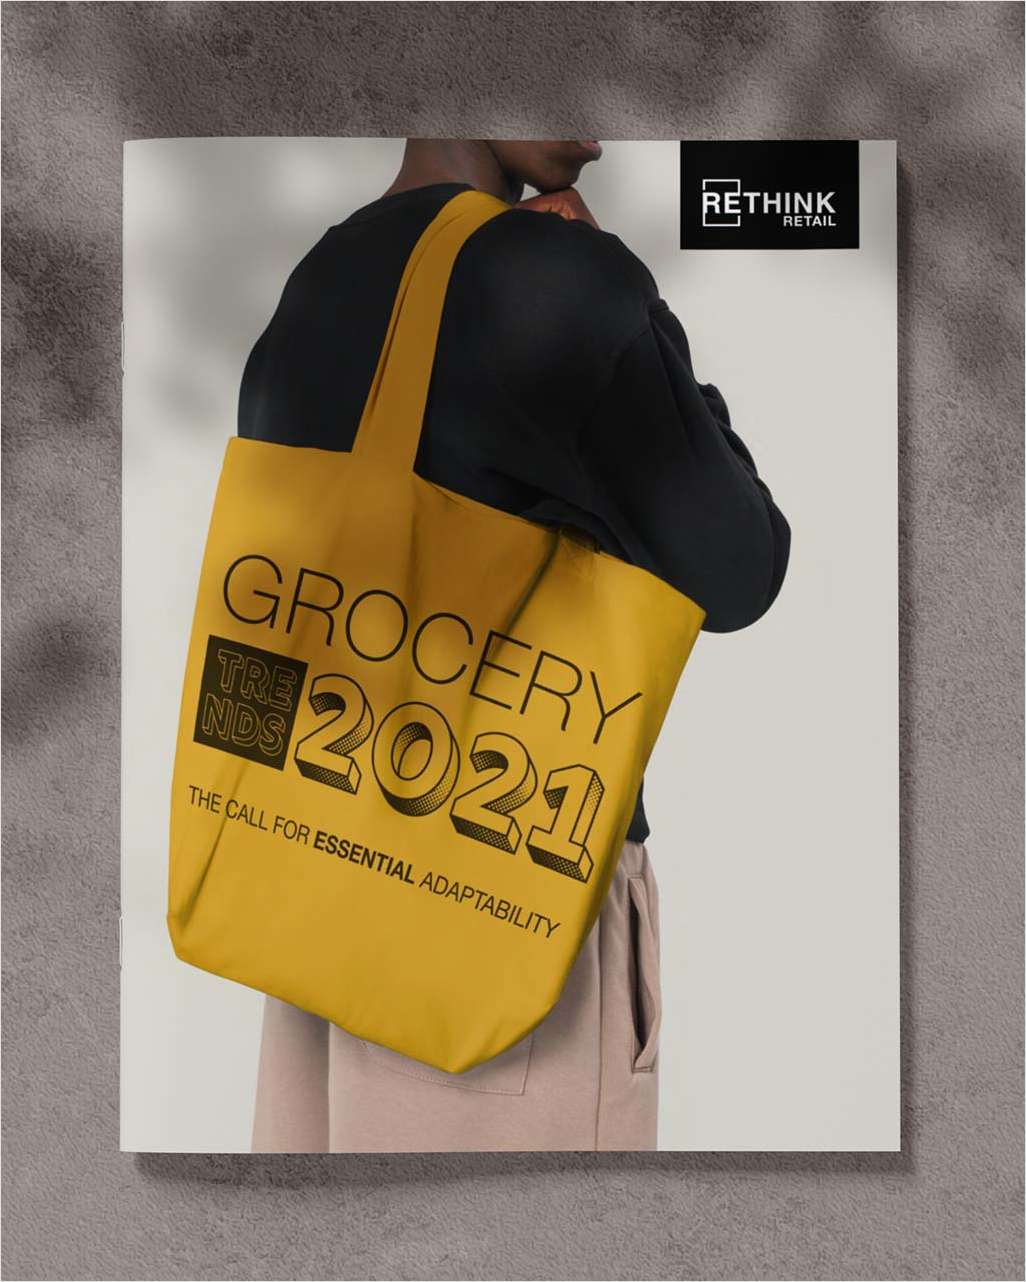 Grocery Trends 2021: The Call for Essential Adaptability